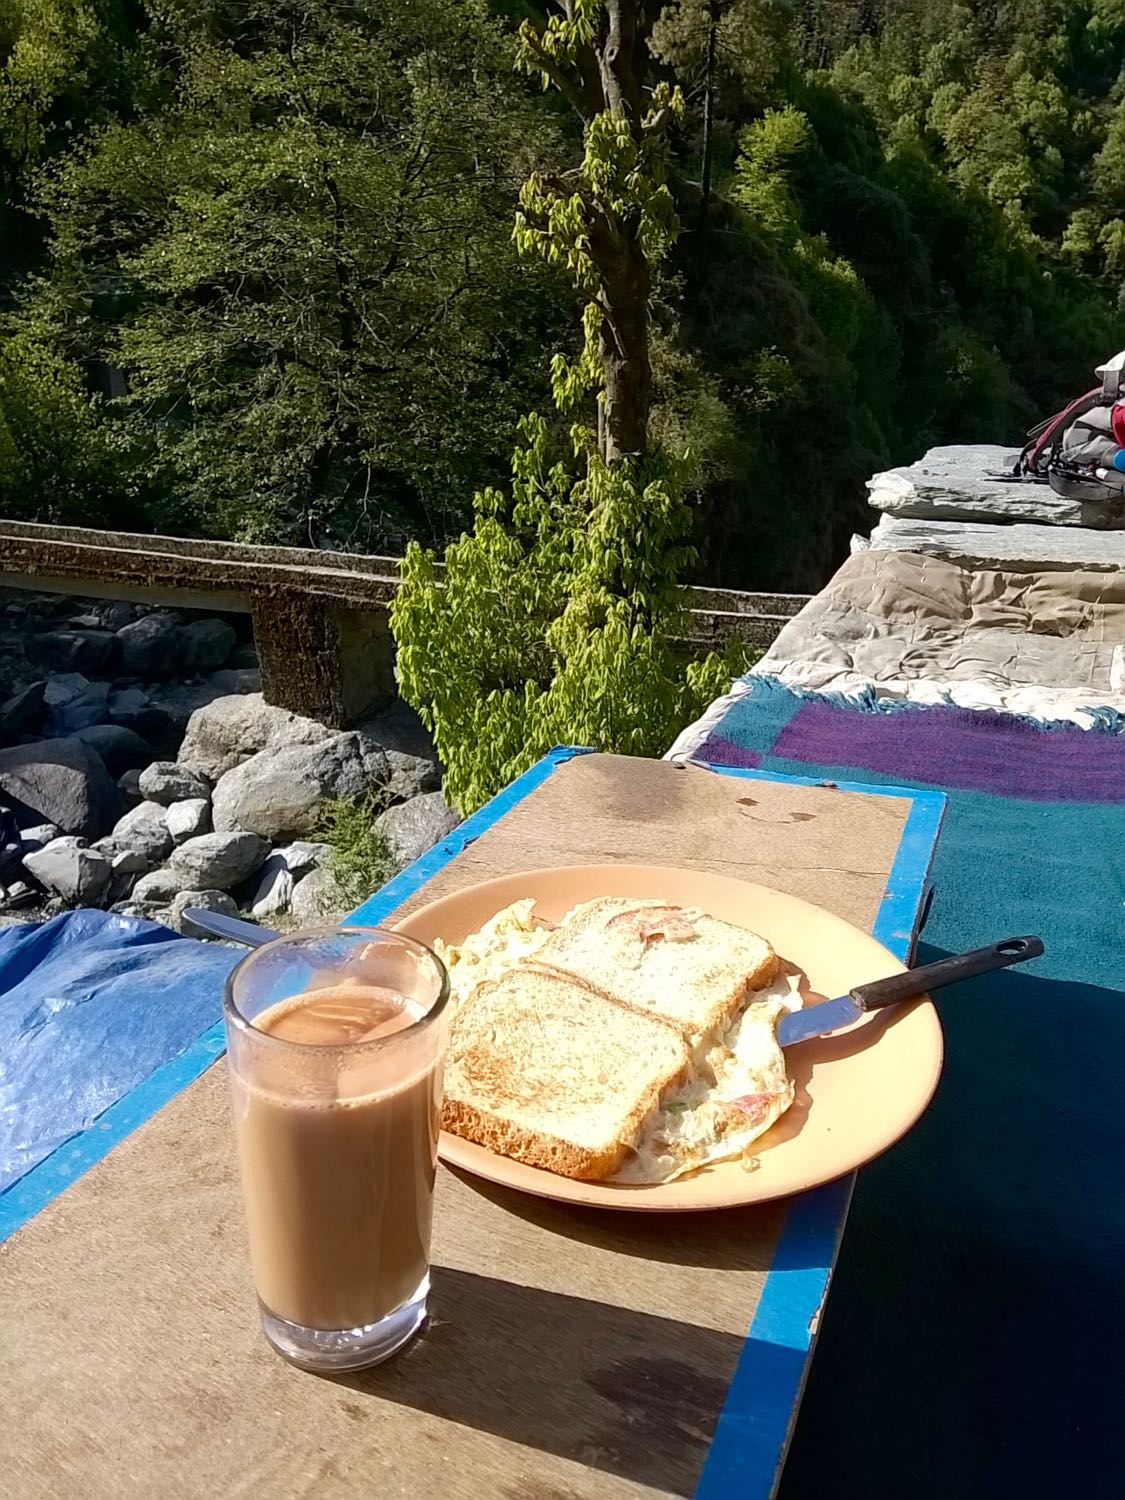 Breakfast at Adventure cafe. The bridge in the background crosses Bhated Stream